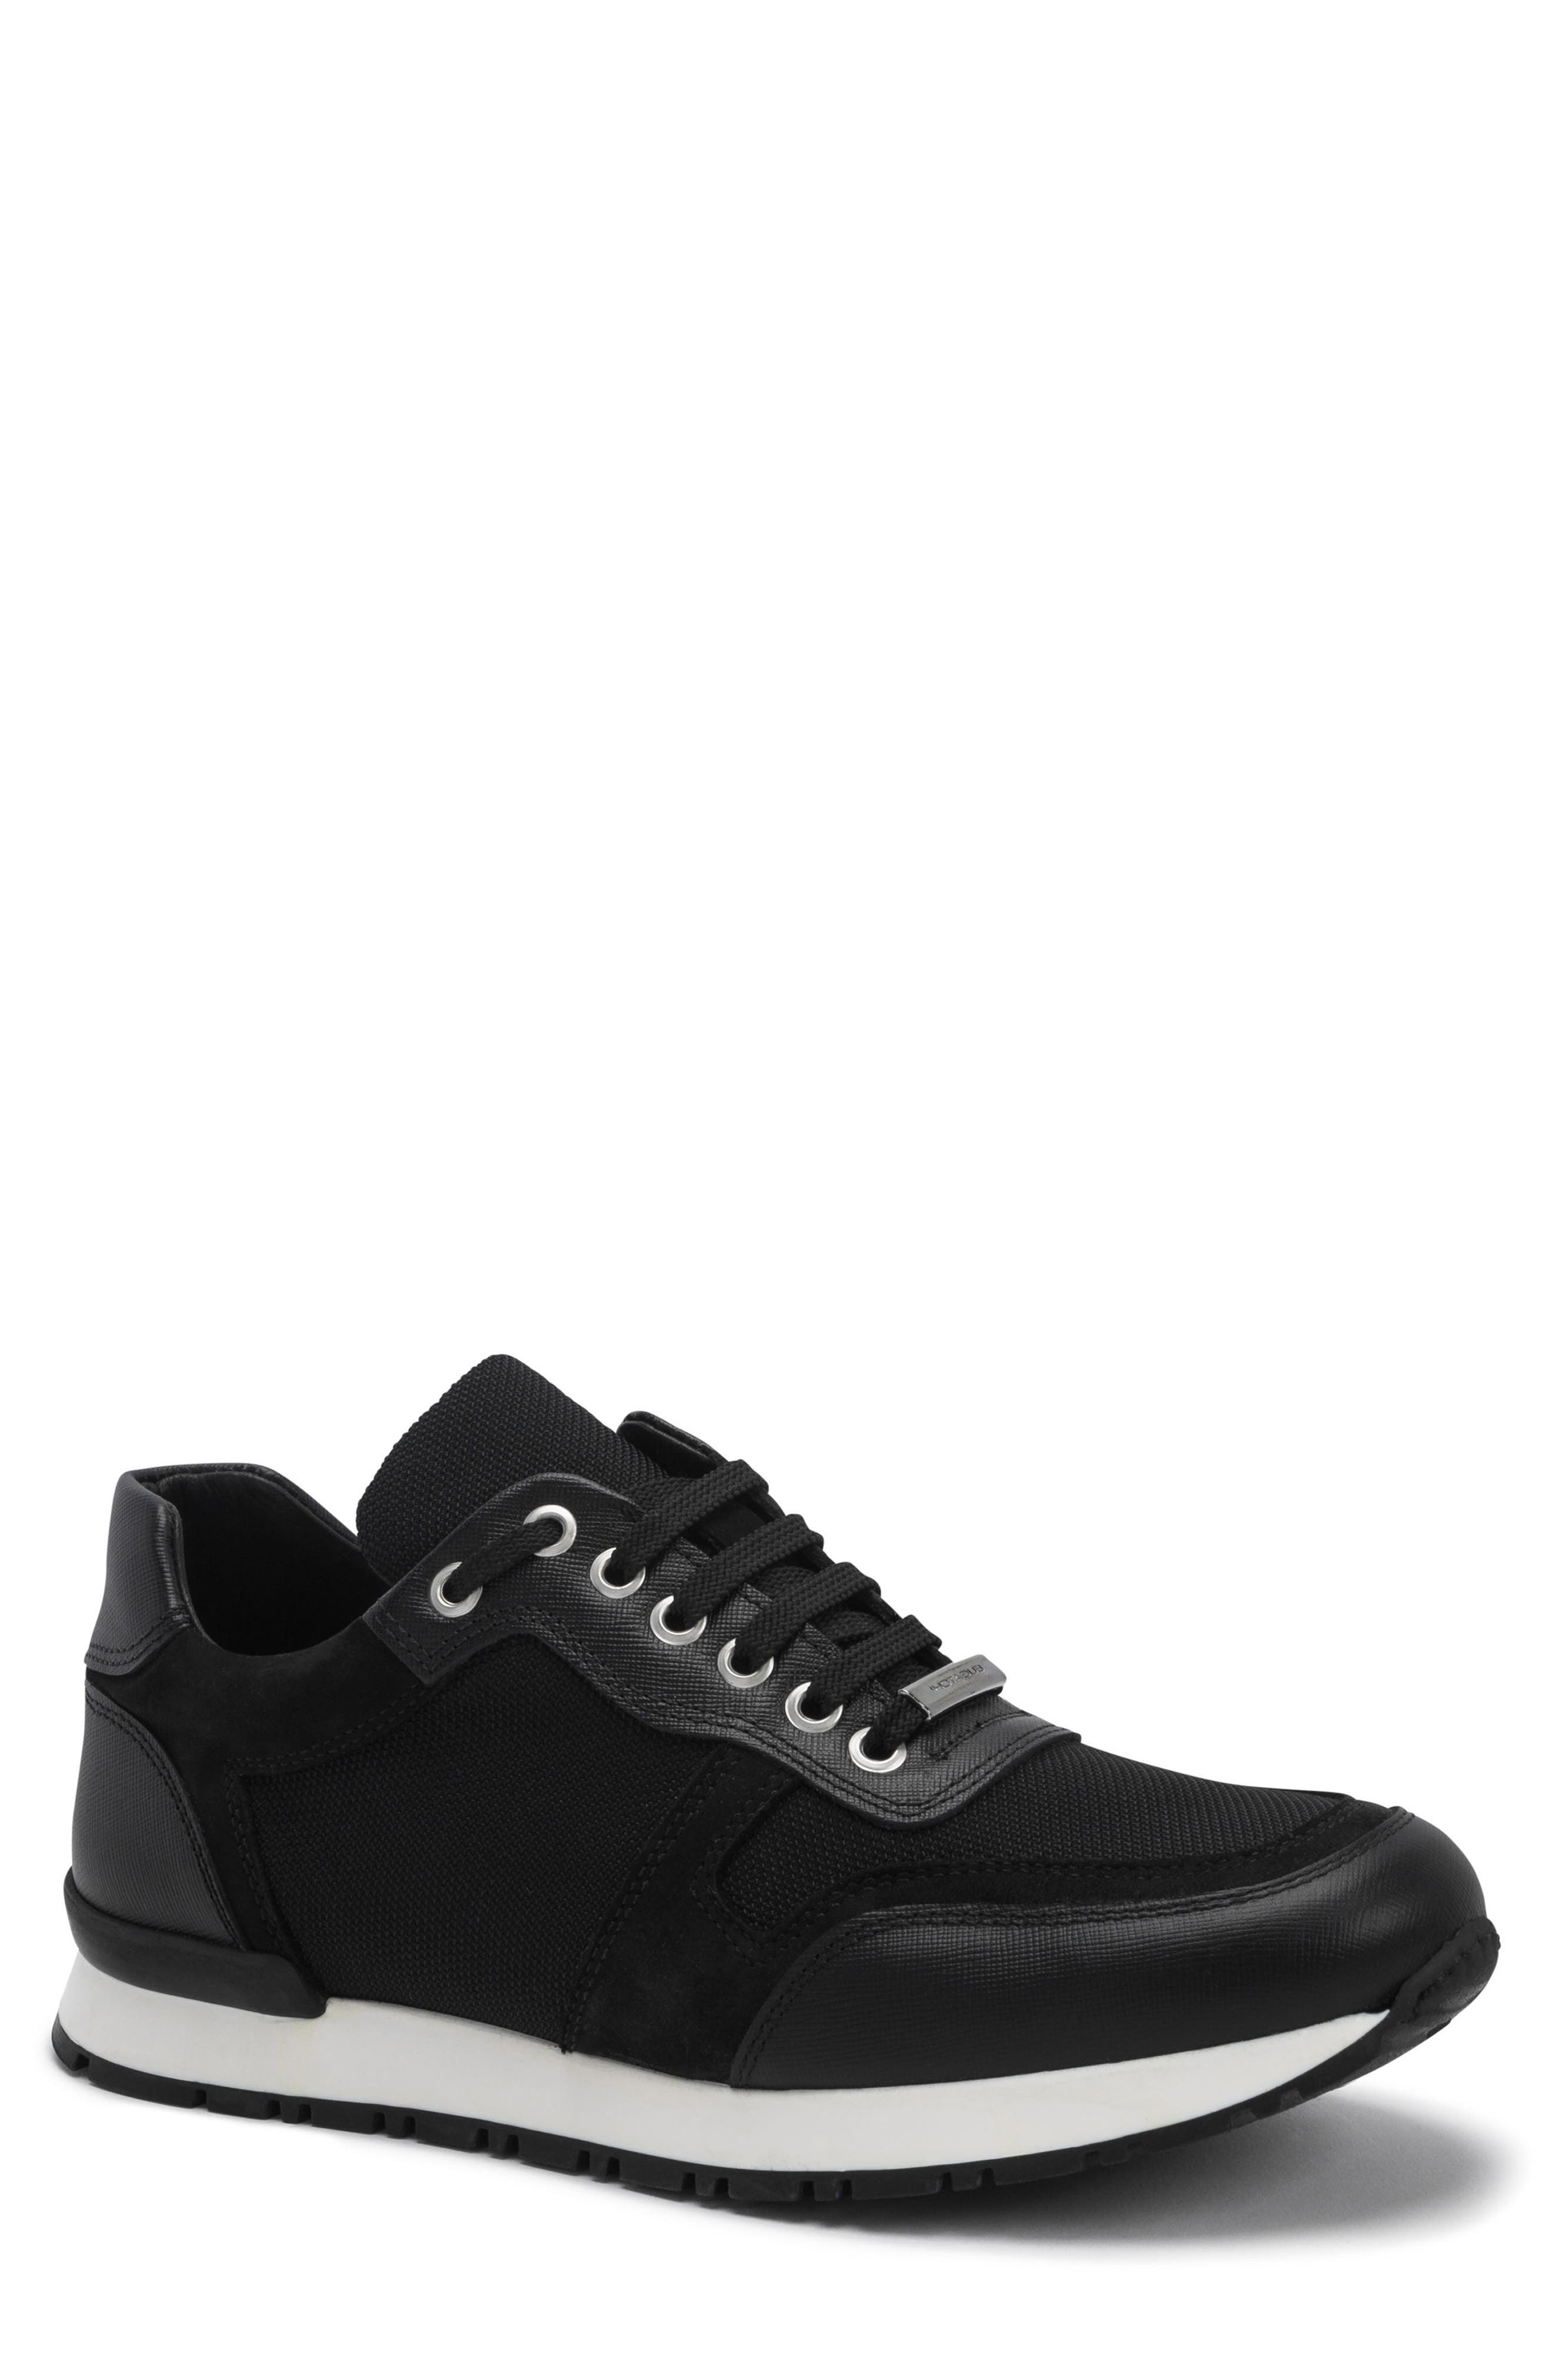 Modena Sneaker,                             Main thumbnail 1, color,                             NERO BLACK